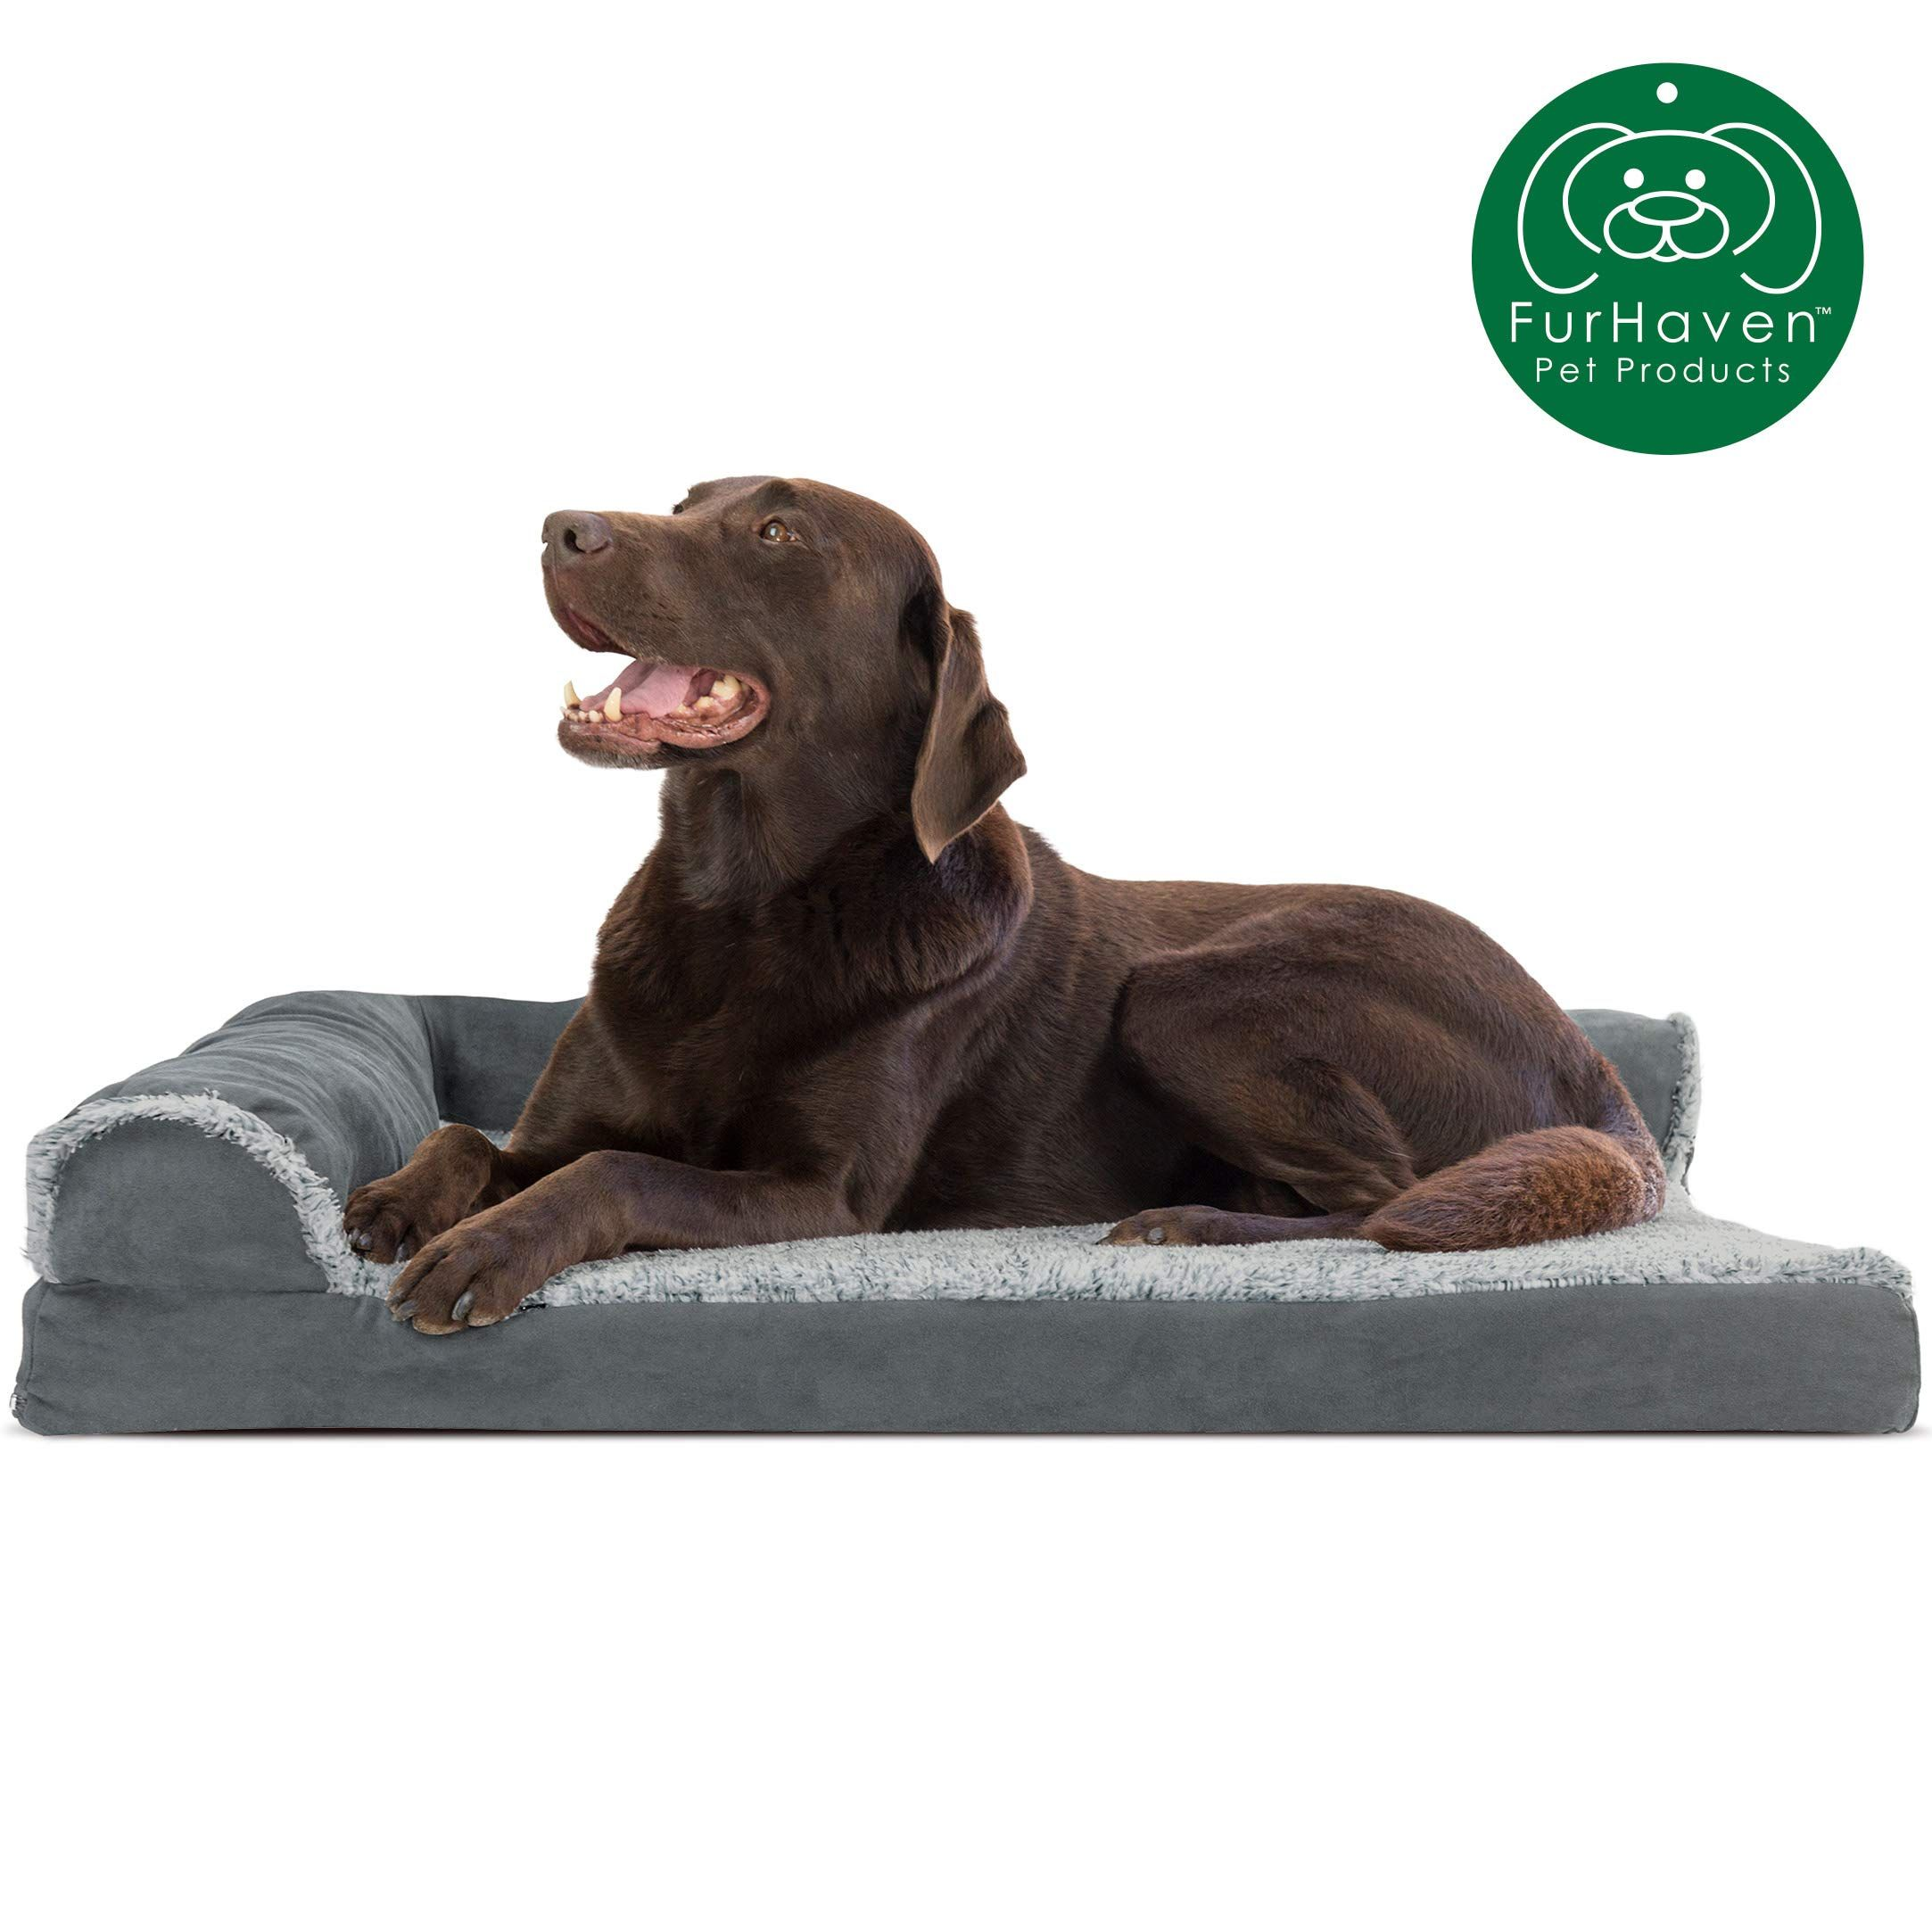 Furhaven Pet Dog Bed Deluxe Orthopedic Goliath Quilted Faux Fur And Velvet L Shaped Chaise Lounge Corner Living Orthopedic Dog Bed Dog Pet Beds Dog Bed Large